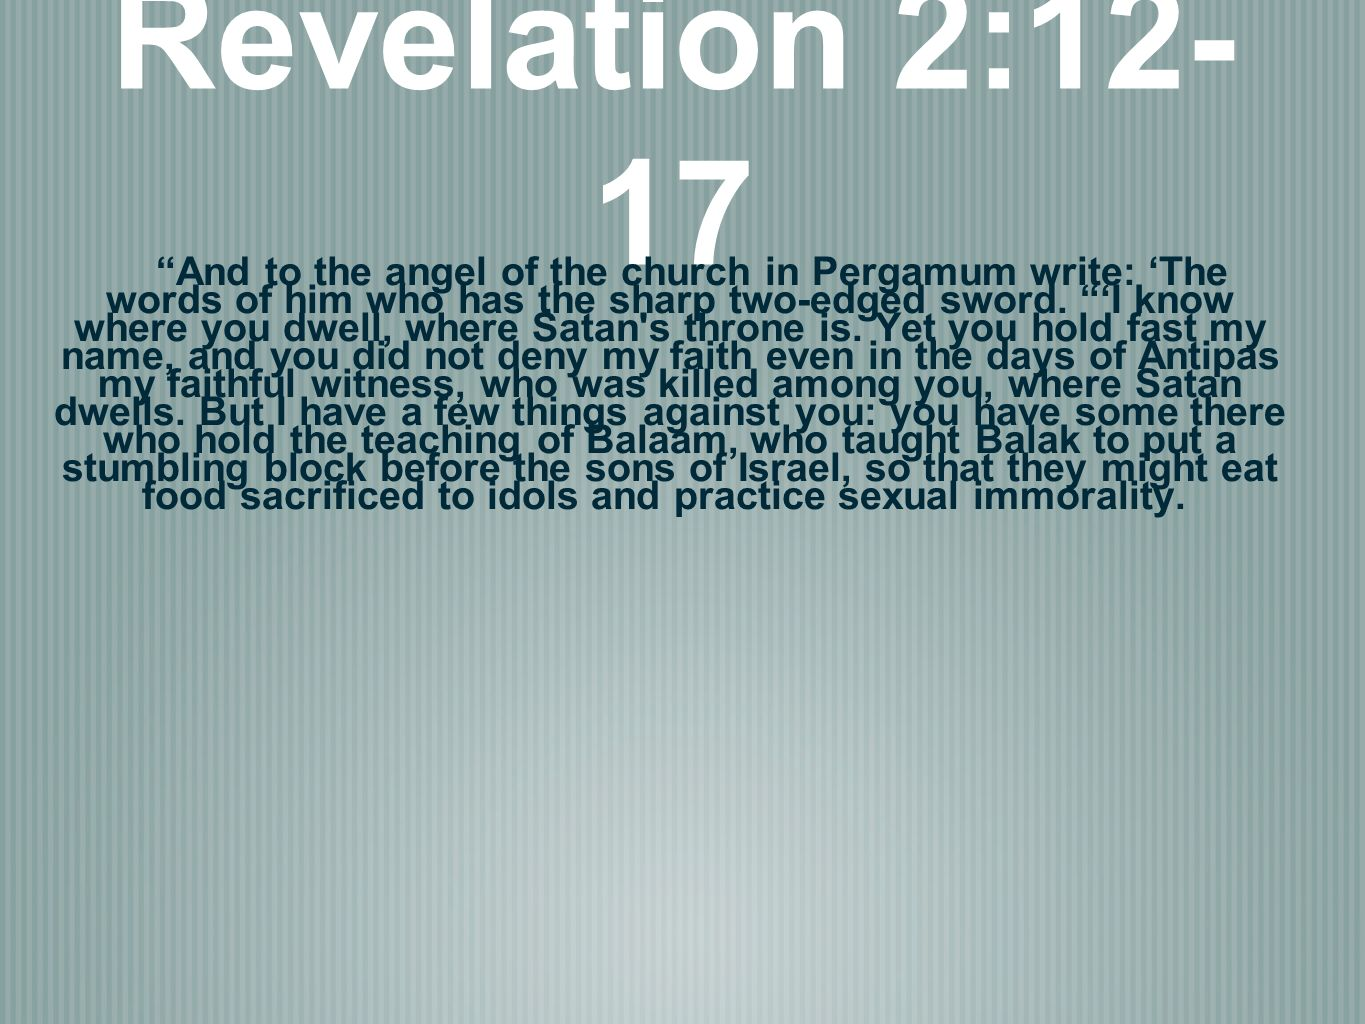 Revelation 2:12- 17 And to the angel of the church in Pergamum write: The words of him who has the sharp two-edged sword. I know where you dwell, wher